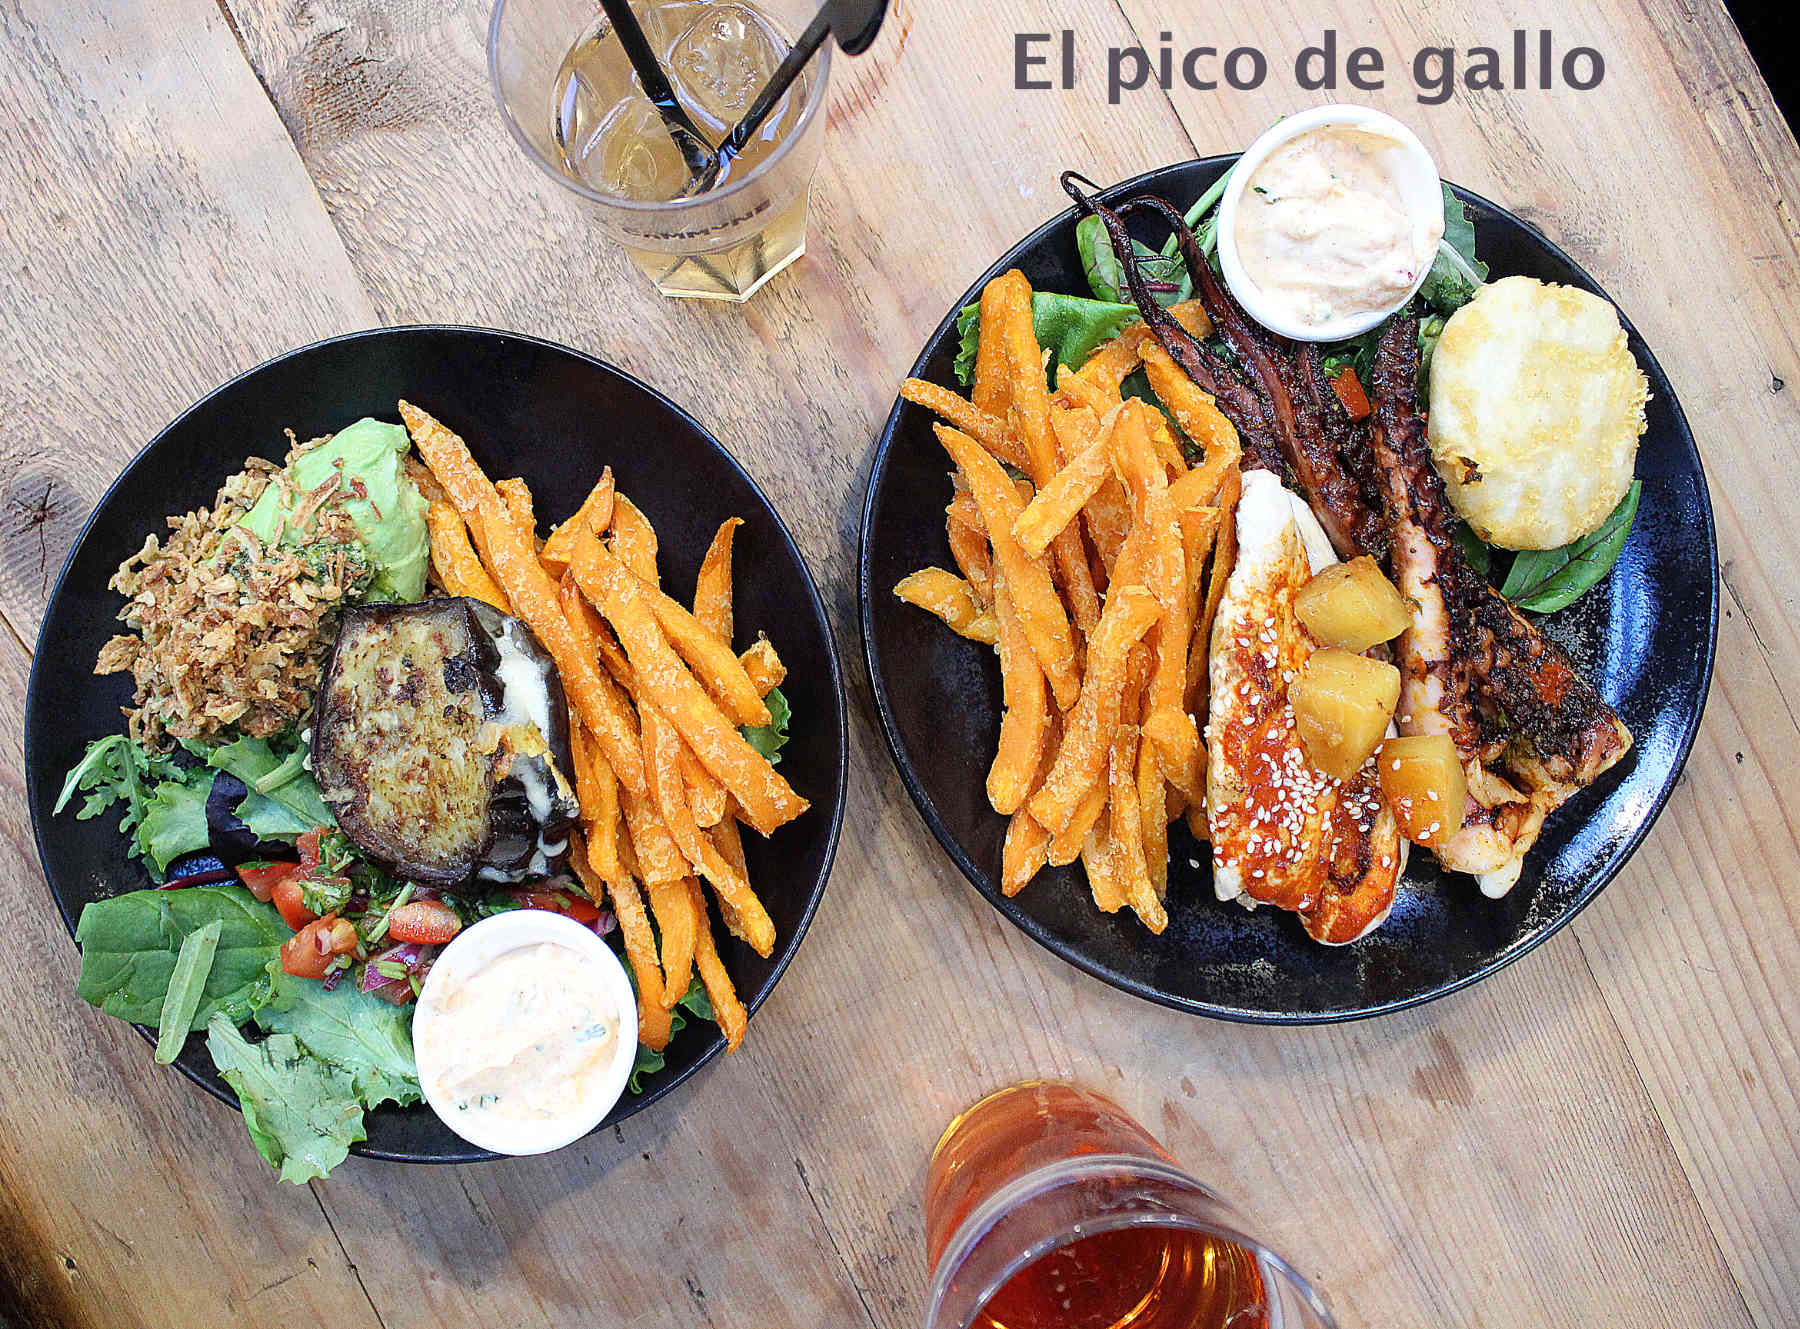 El pico de gallo, Latin America in your plate, Lyon 7